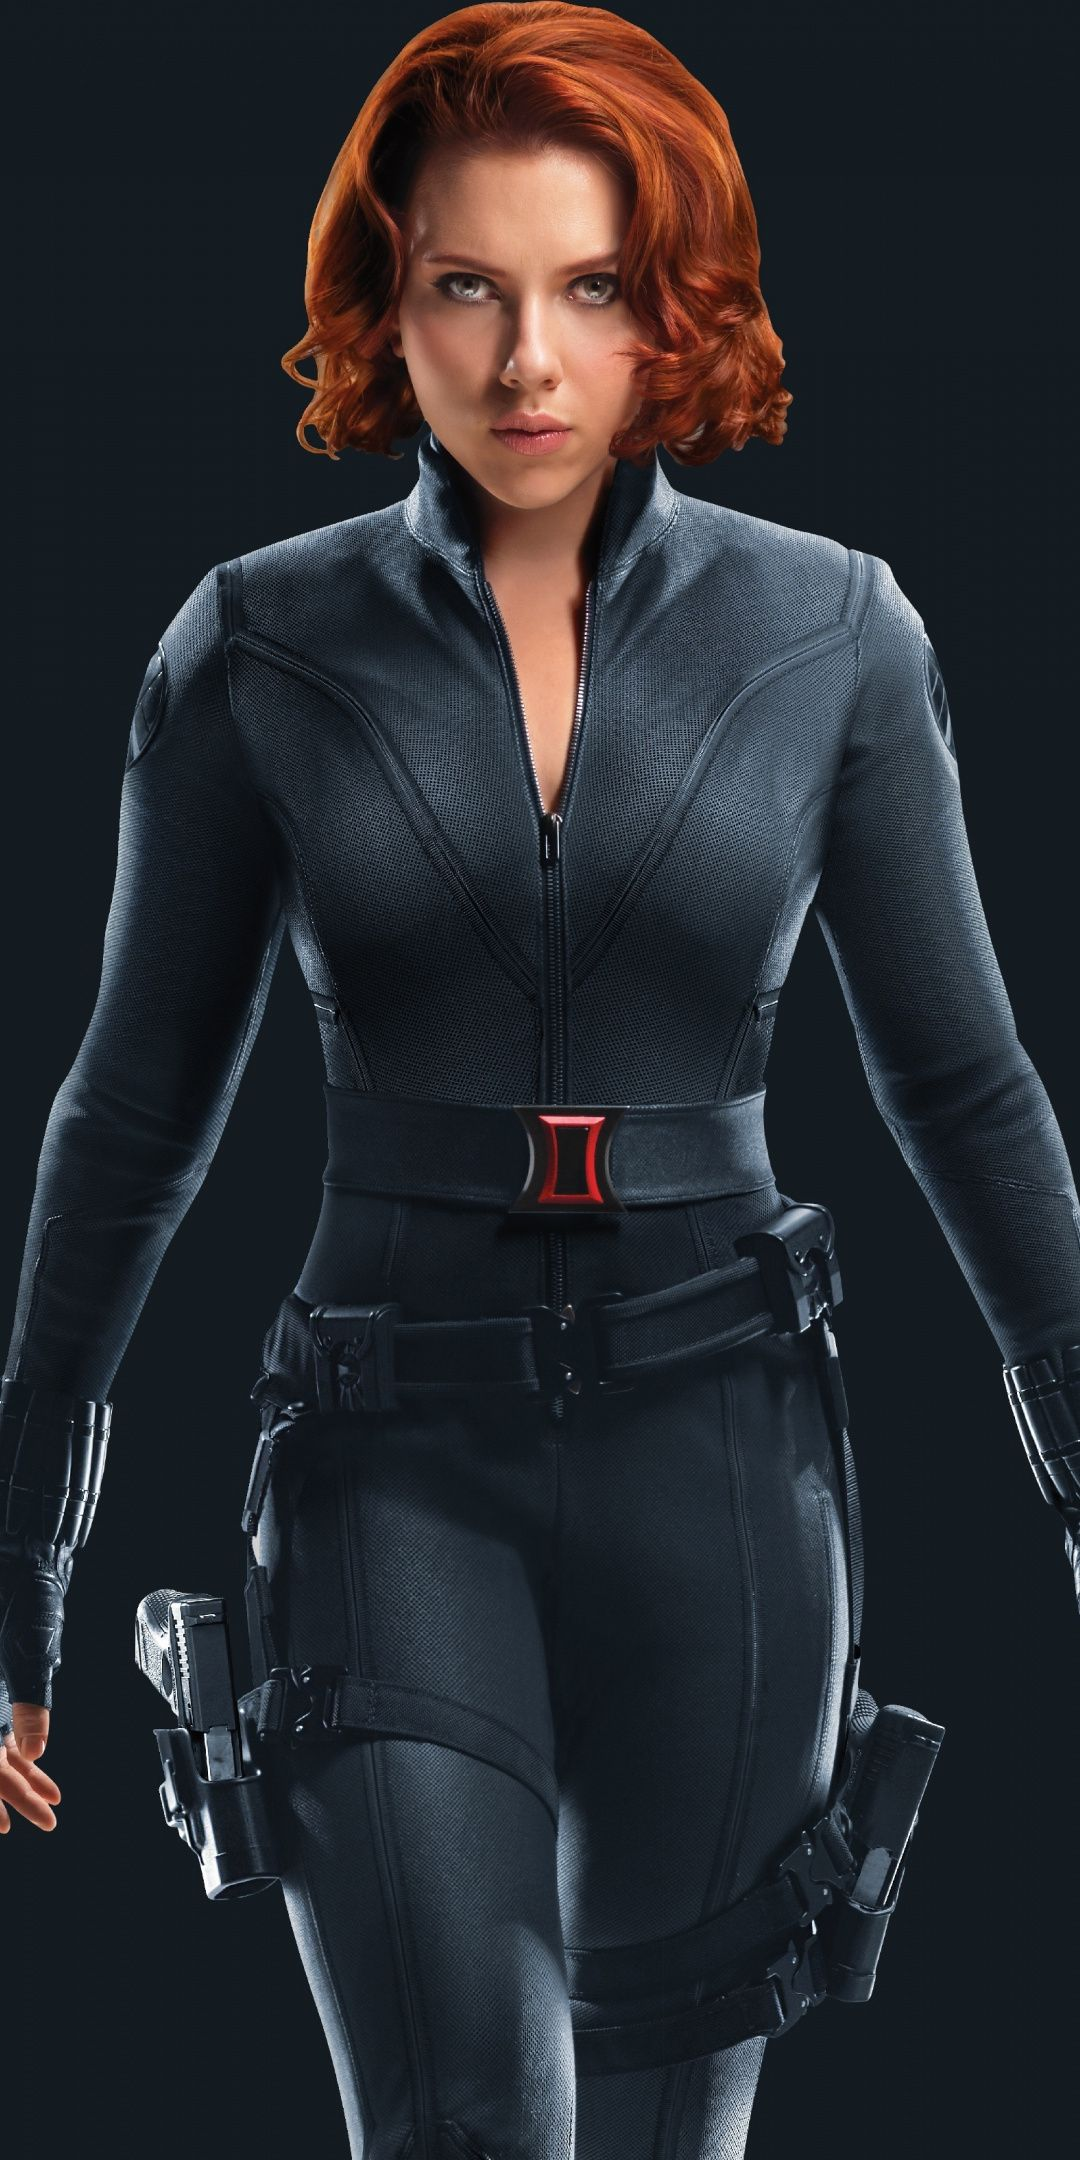 Scarlett Johansson Wallpaper: Dark, Black Widow, Scarlett Johansson, Marvel Comics